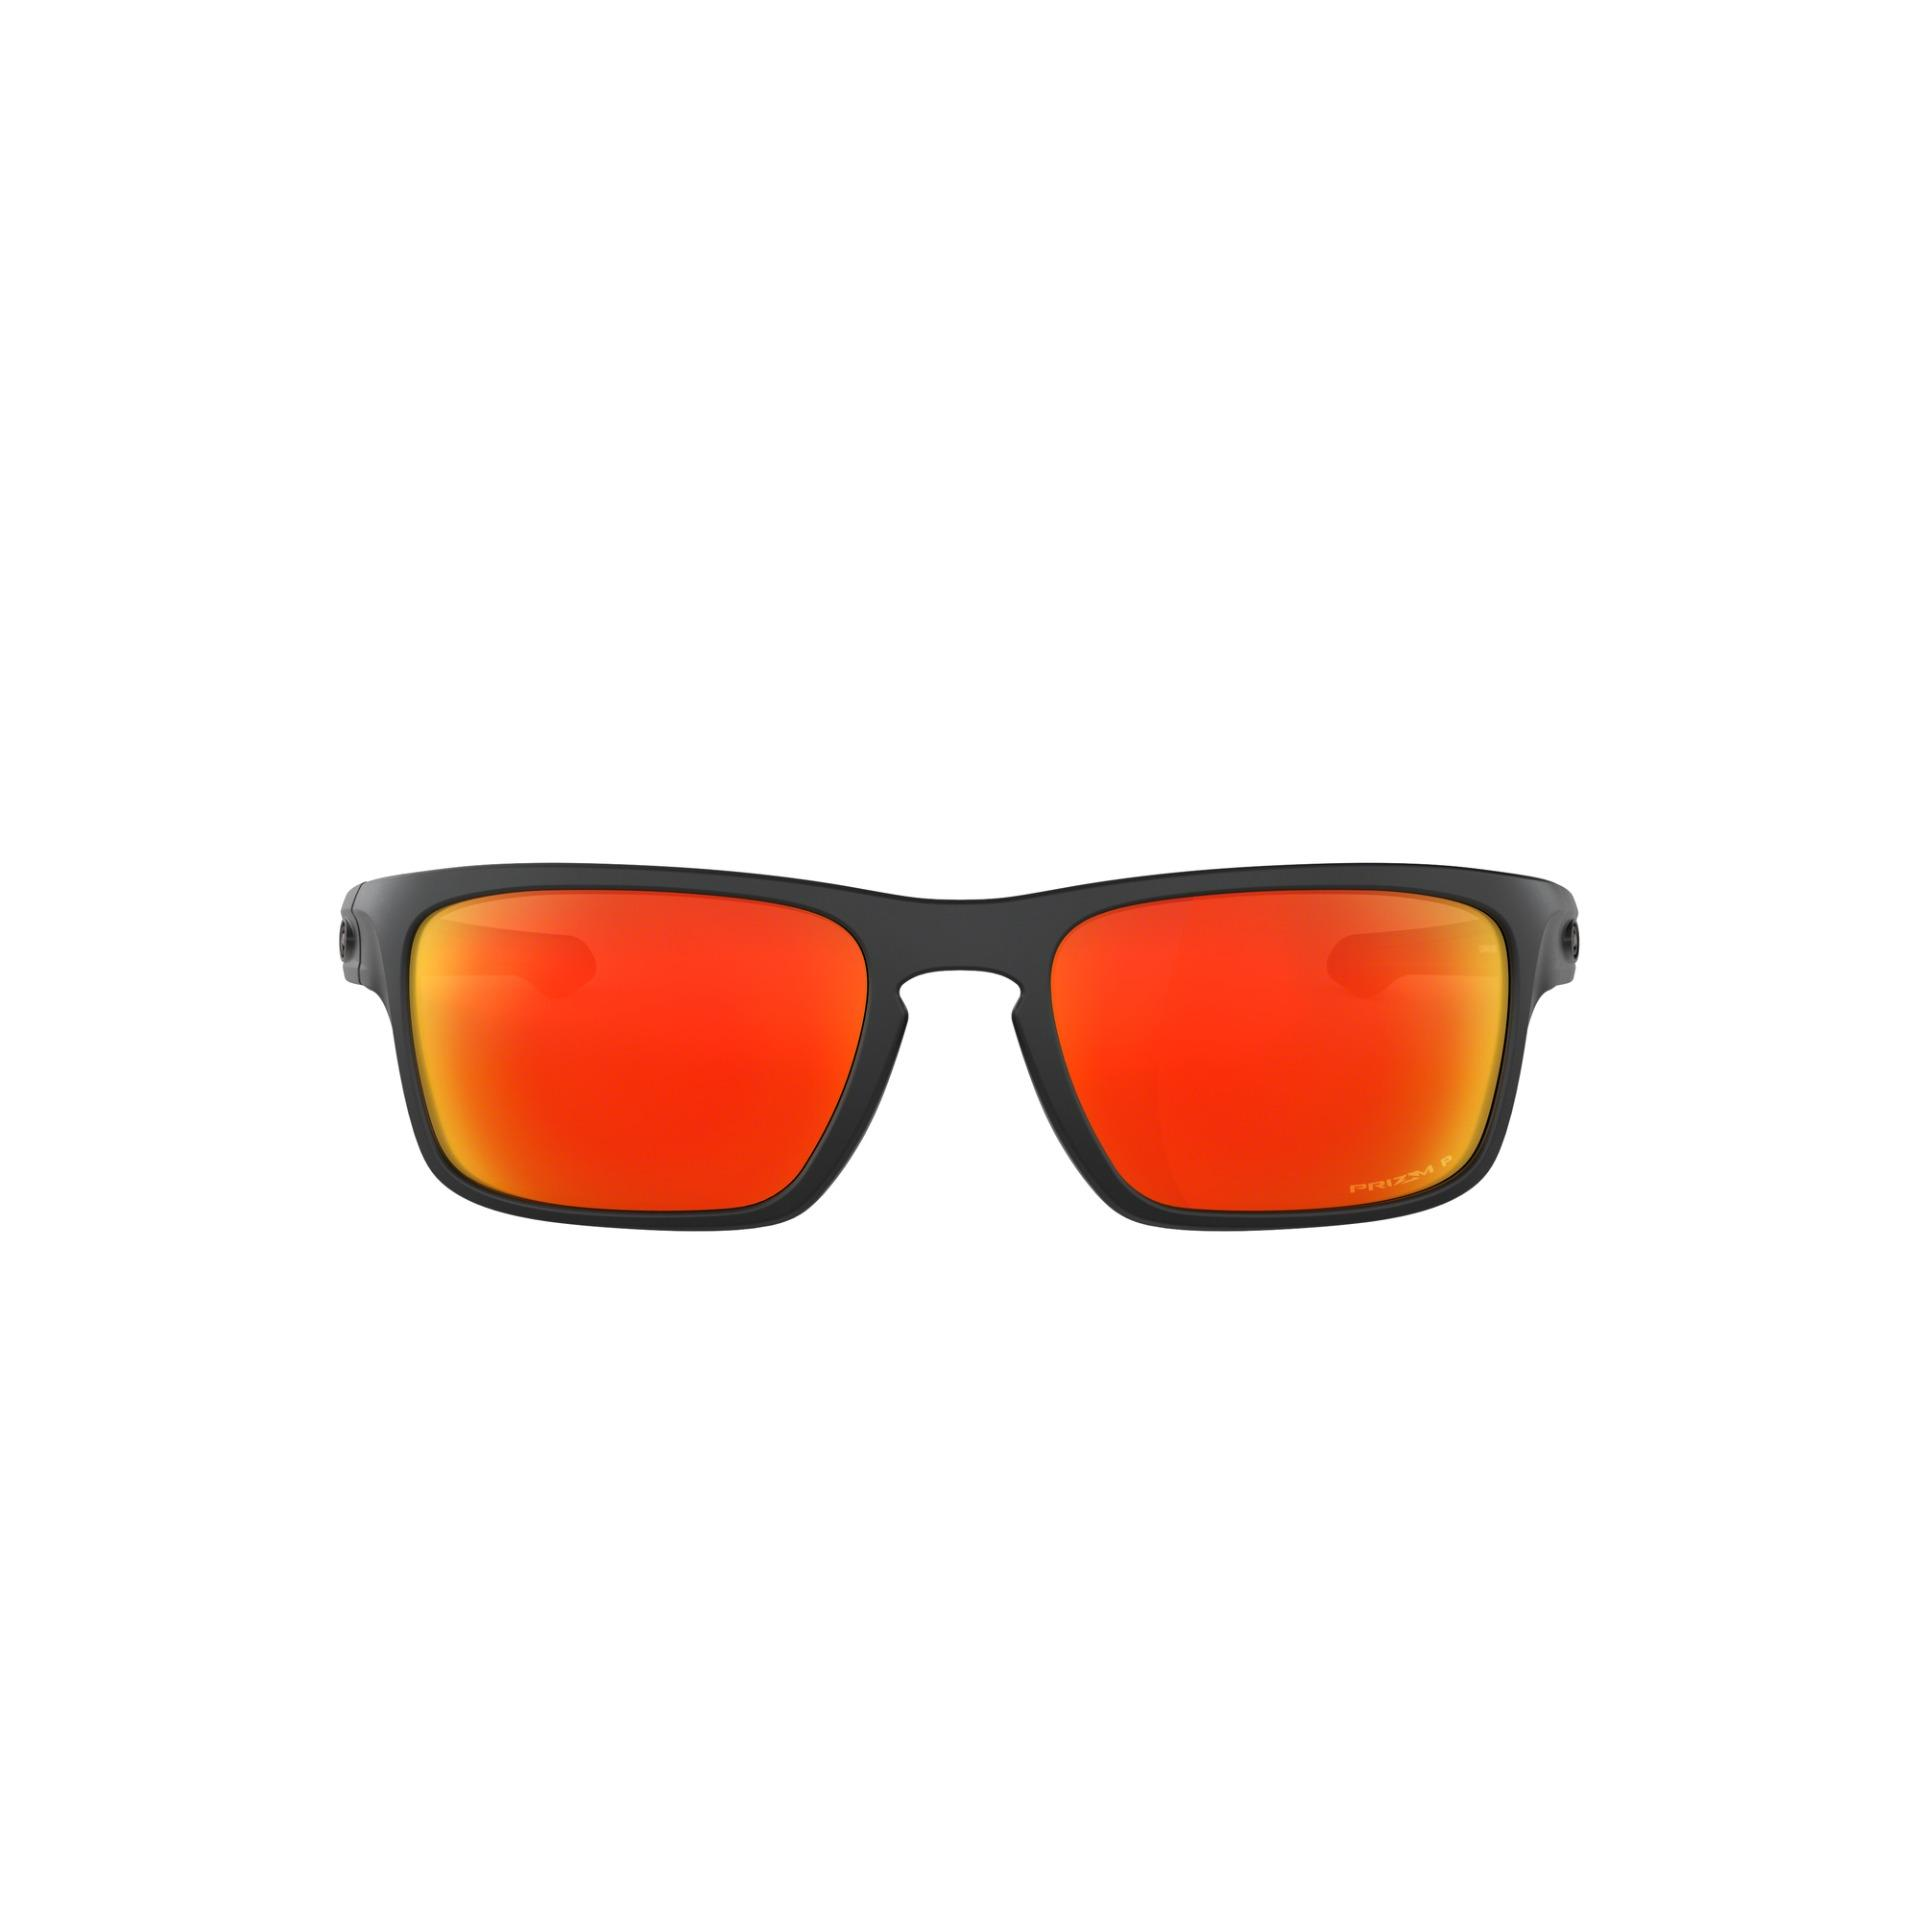 6281220b06bc8 Oakley Philippines - Oakley Sunglasses For Men for sale - prices ...